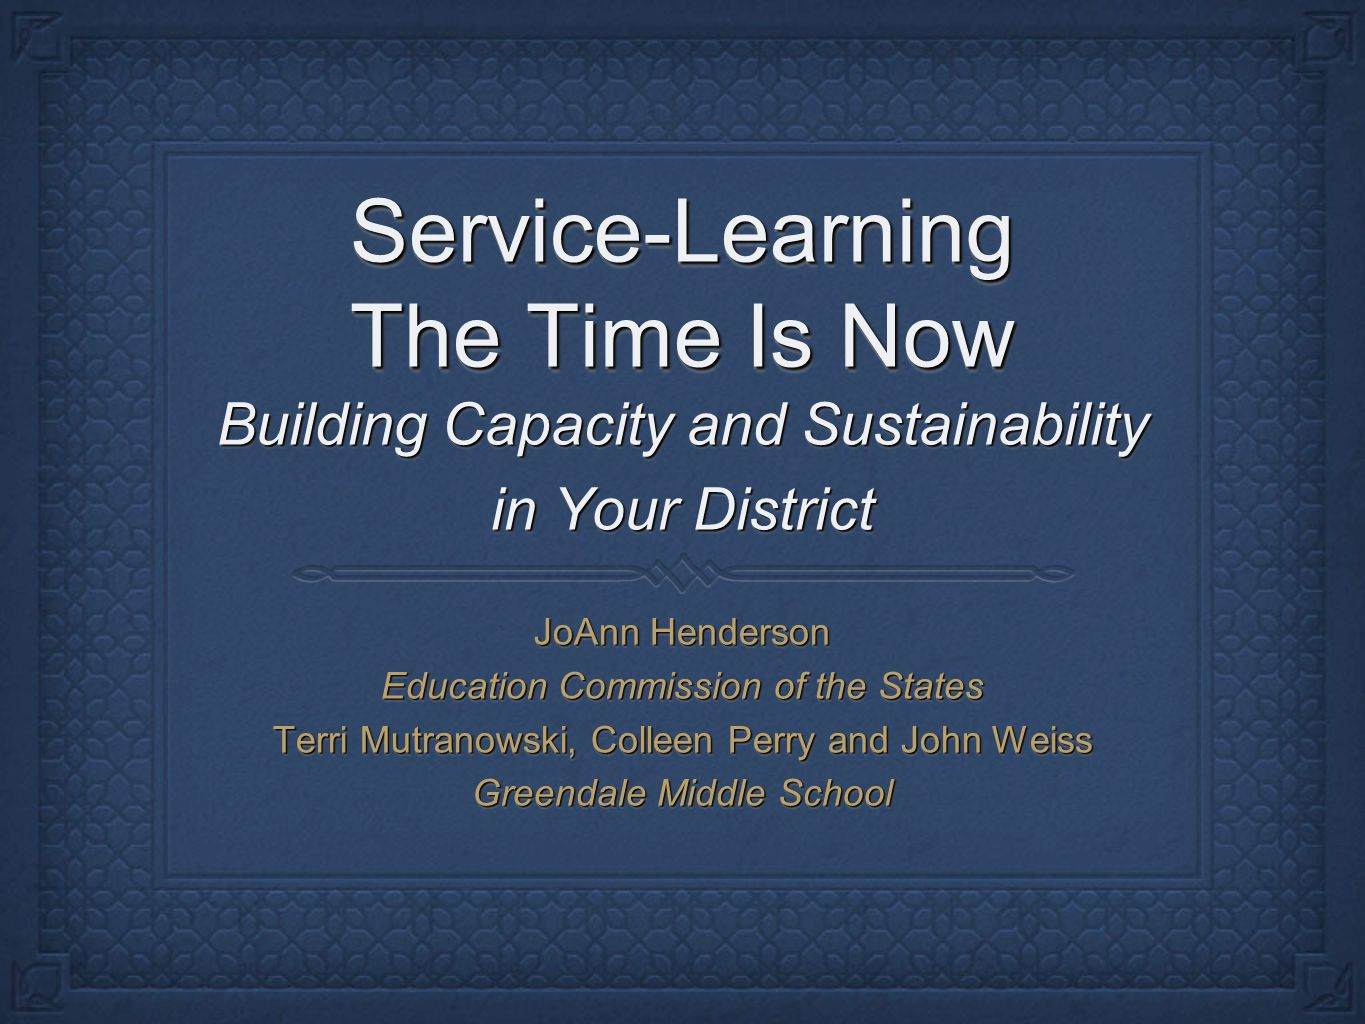 Service-Learning The Time Is Now Building Capacity and Sustainability in Your District JoAnn Henderson Education Commission of the States Terri Mutranowski, Colleen Perry and John Weiss Greendale Middle School Building Capacity and Sustainability in Your District JoAnn Henderson Education Commission of the States Terri Mutranowski, Colleen Perry and John Weiss Greendale Middle School